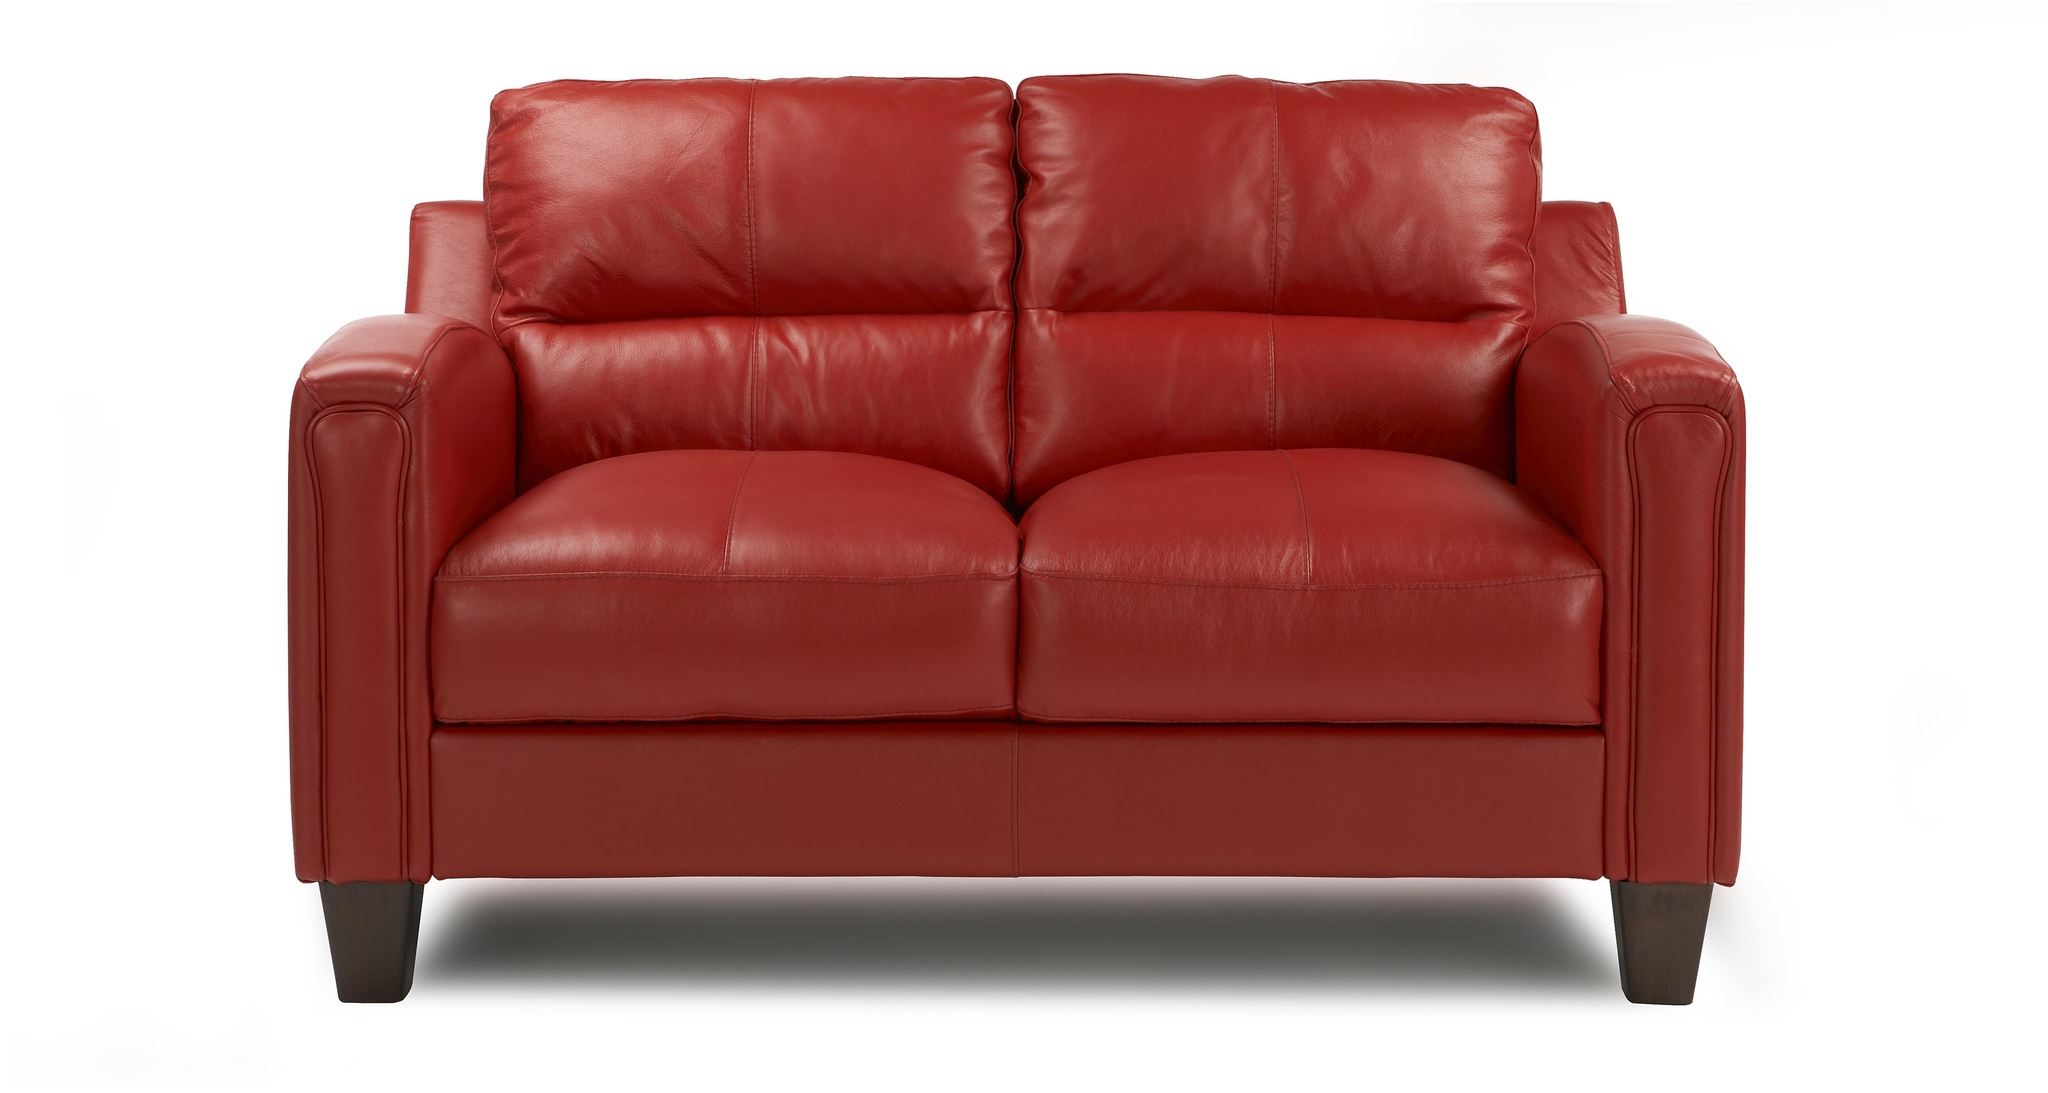 DFS BOUNTY RED SOFA 100 REAL LEATHER SETTEE EBay